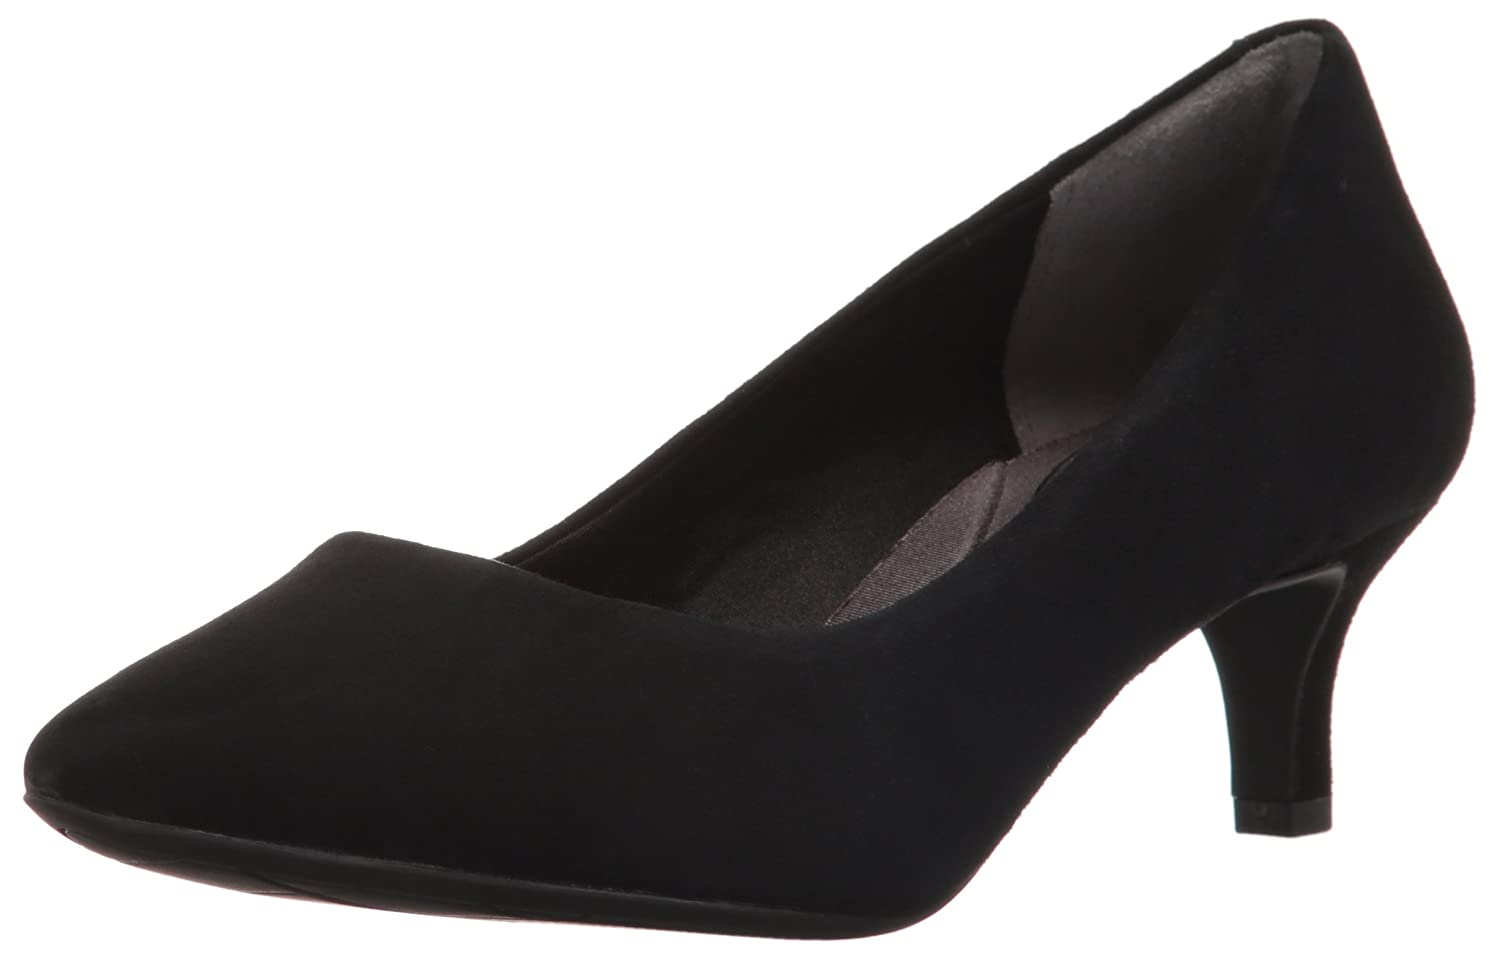 Rockport Women's Total Motion Kalila Dress Pump B01ABRZMHC 7.5 W US|Black Kid Suede